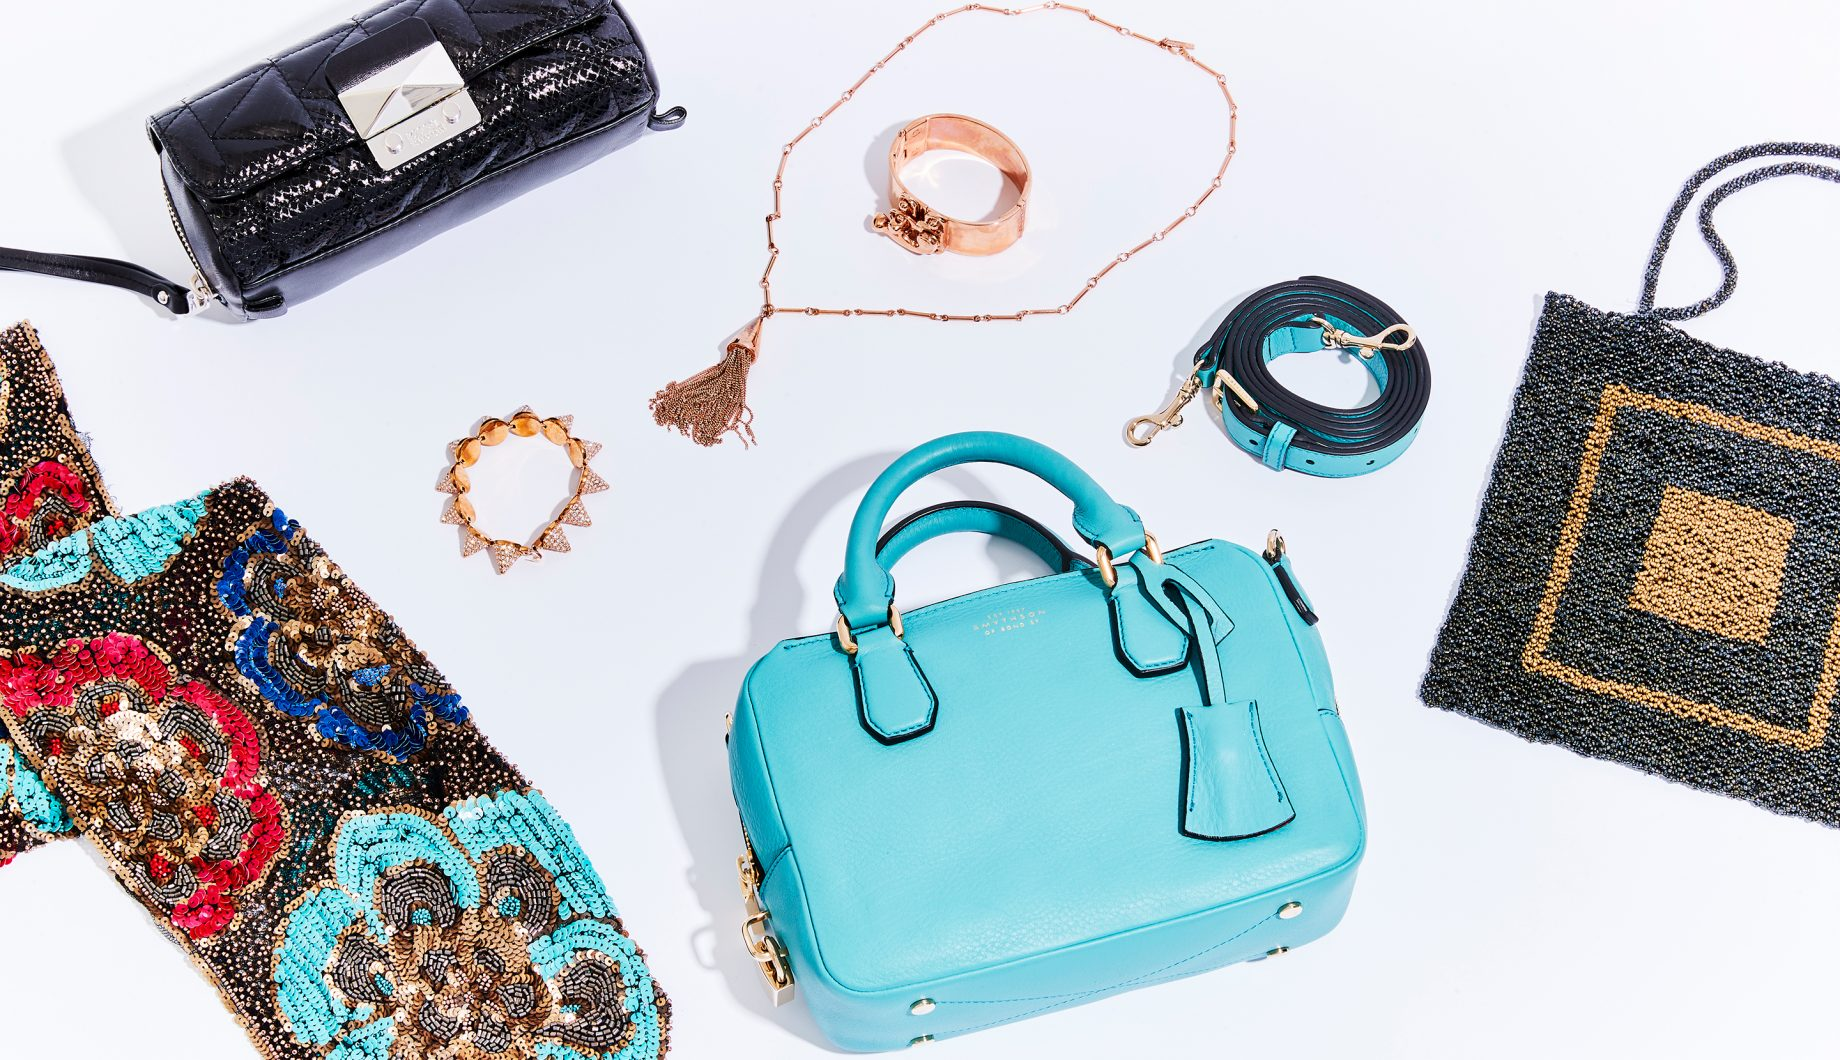 Images of women's accessories